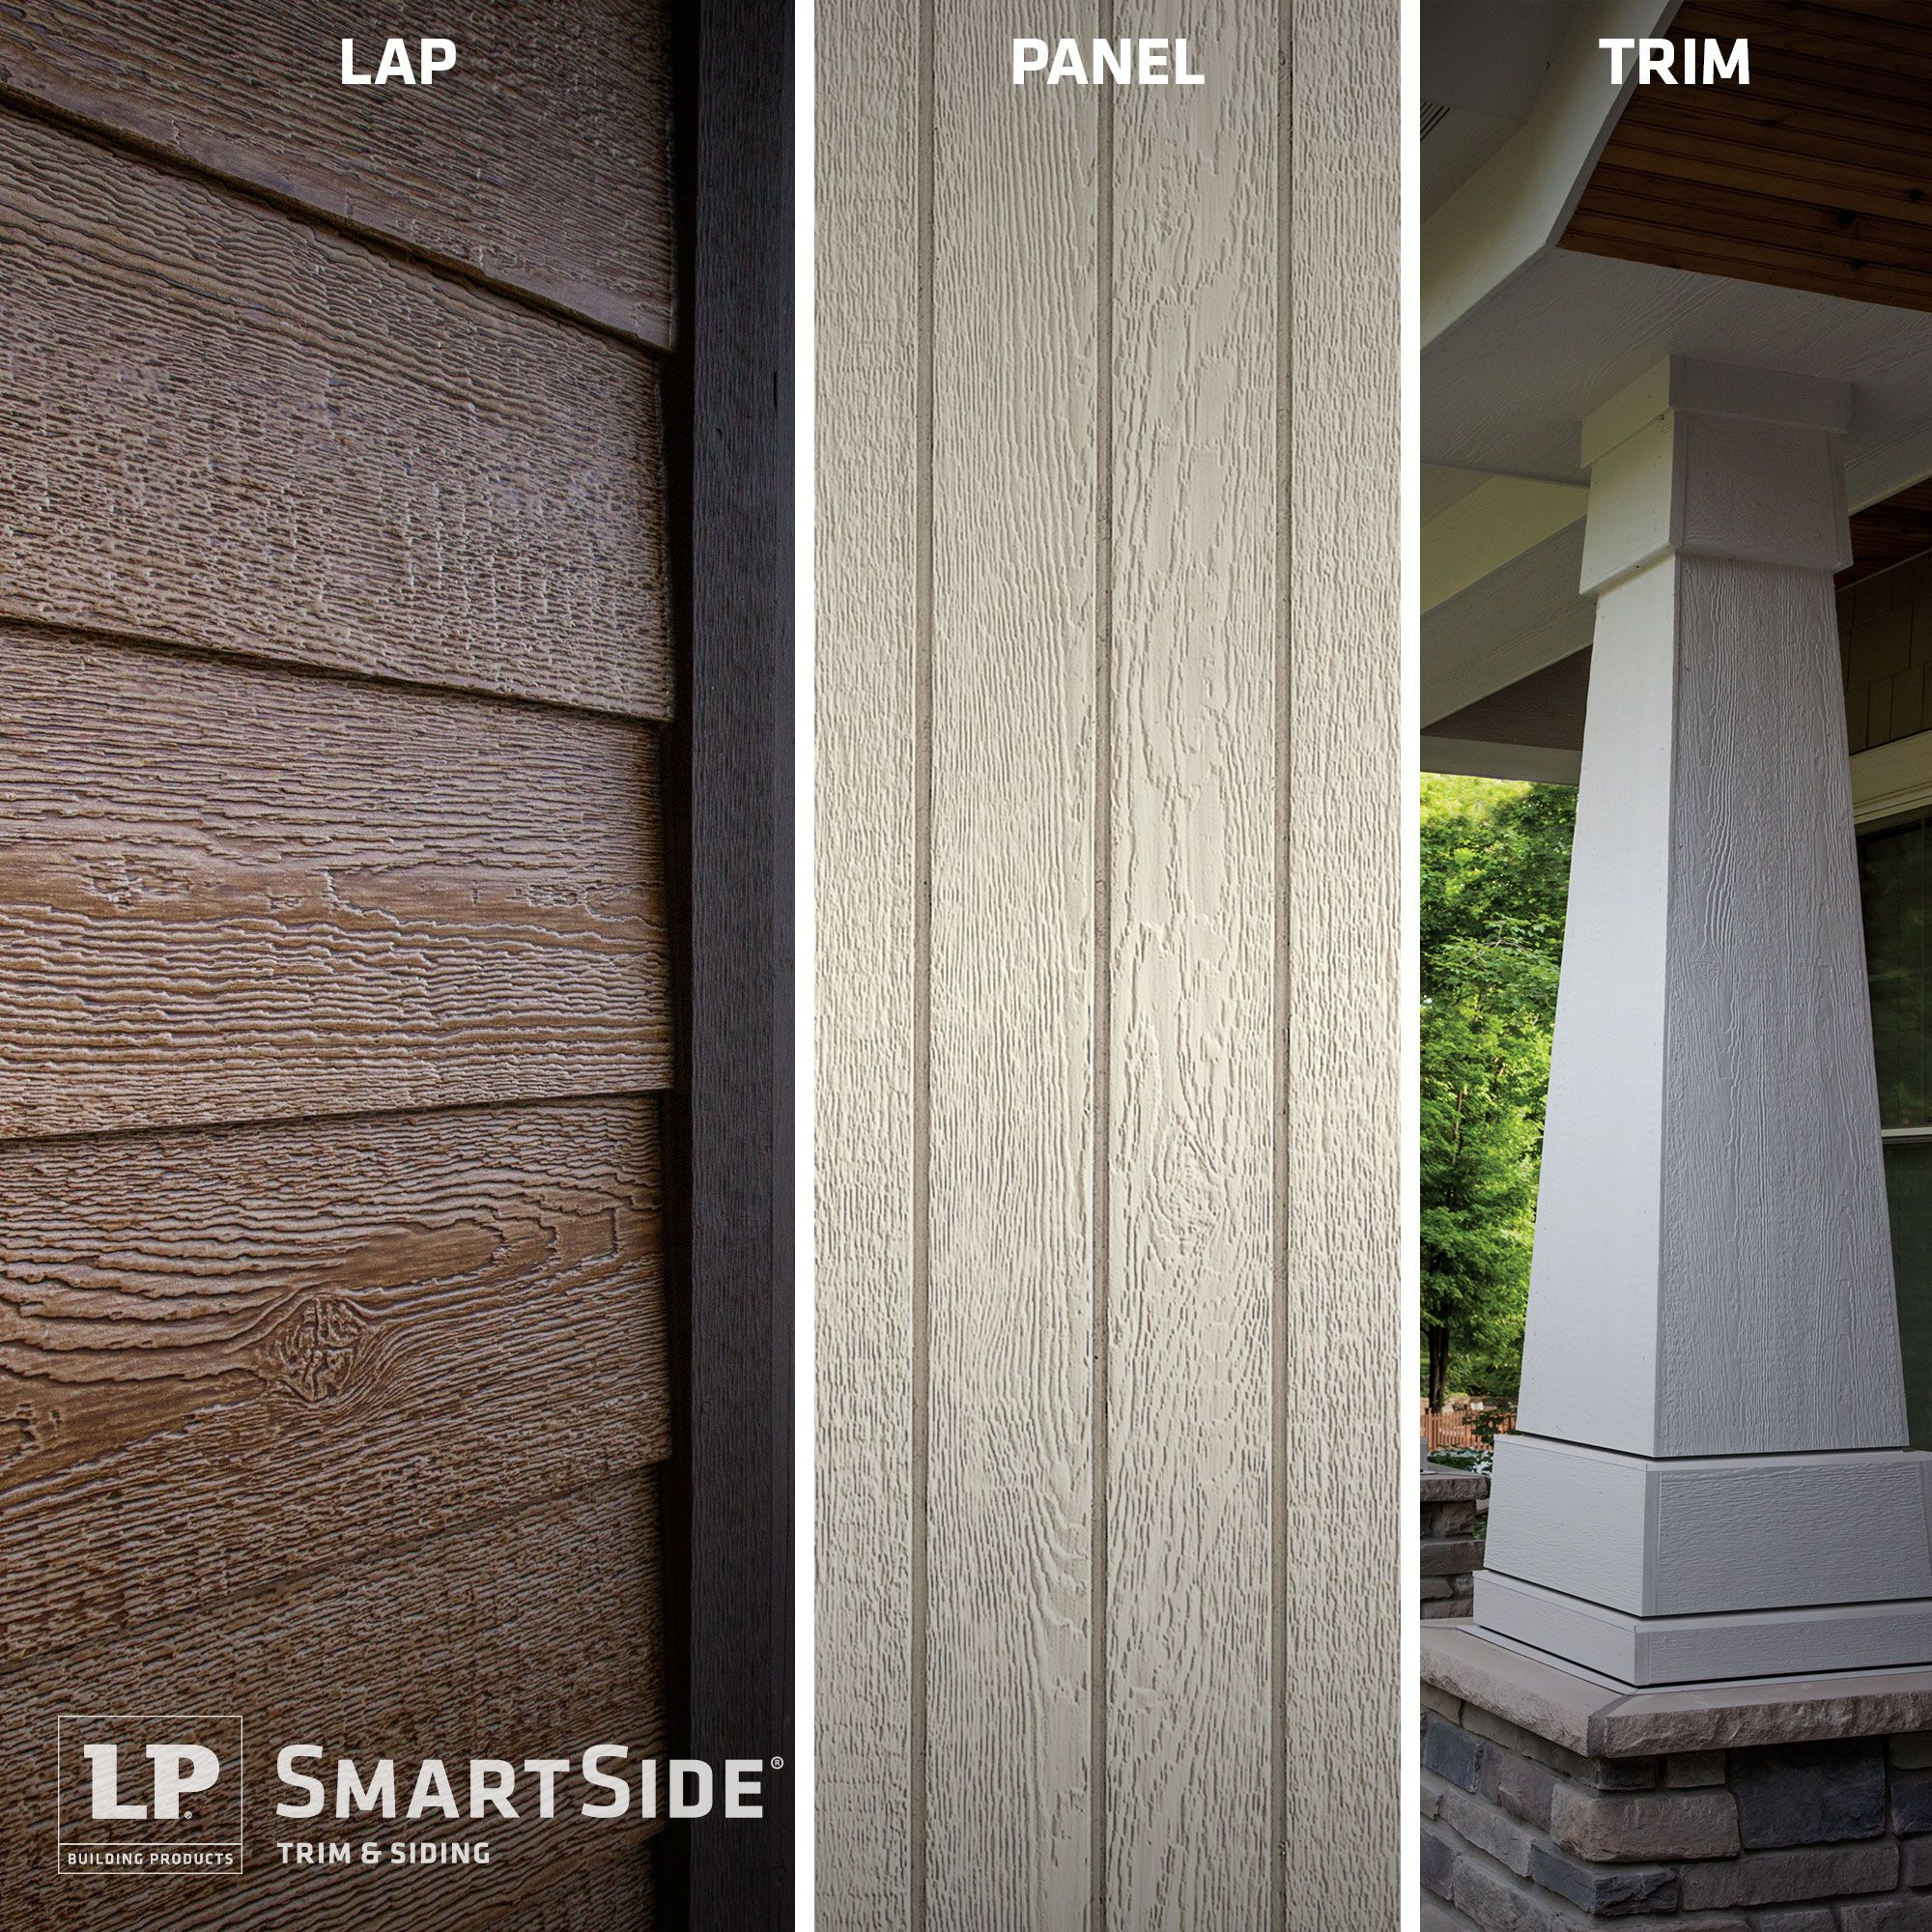 Do You Know The Difference Between Lap Siding And Panel Siding How About Trim This Interactive T Exterior Siding Options House Siding Options Siding Options